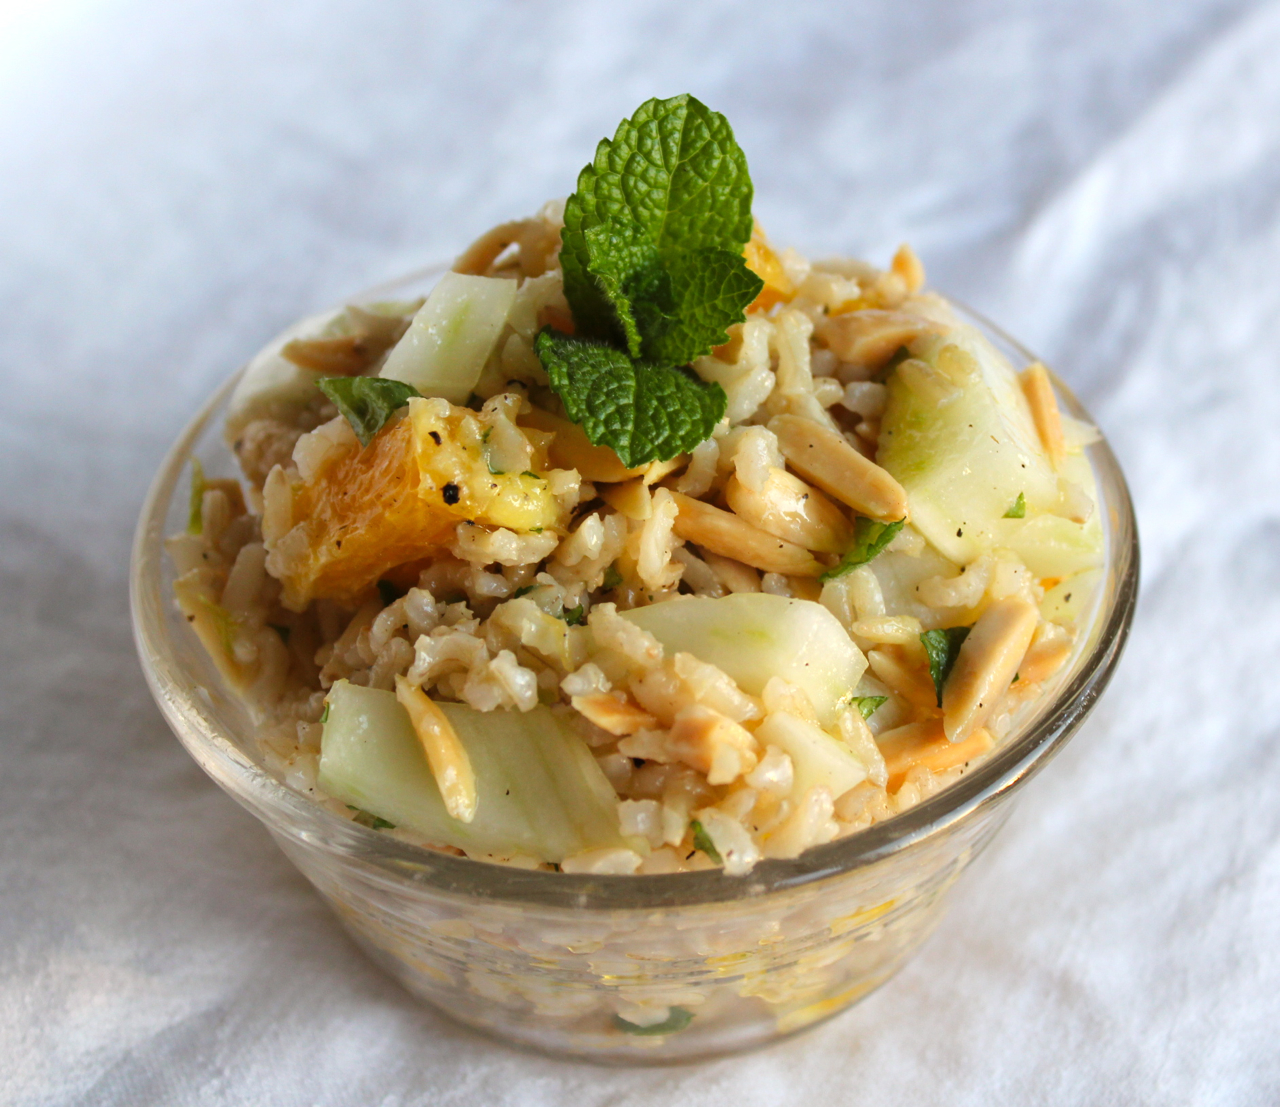 Juicy navel oranges team up with crunchy fennel, slivered almonds, and ...